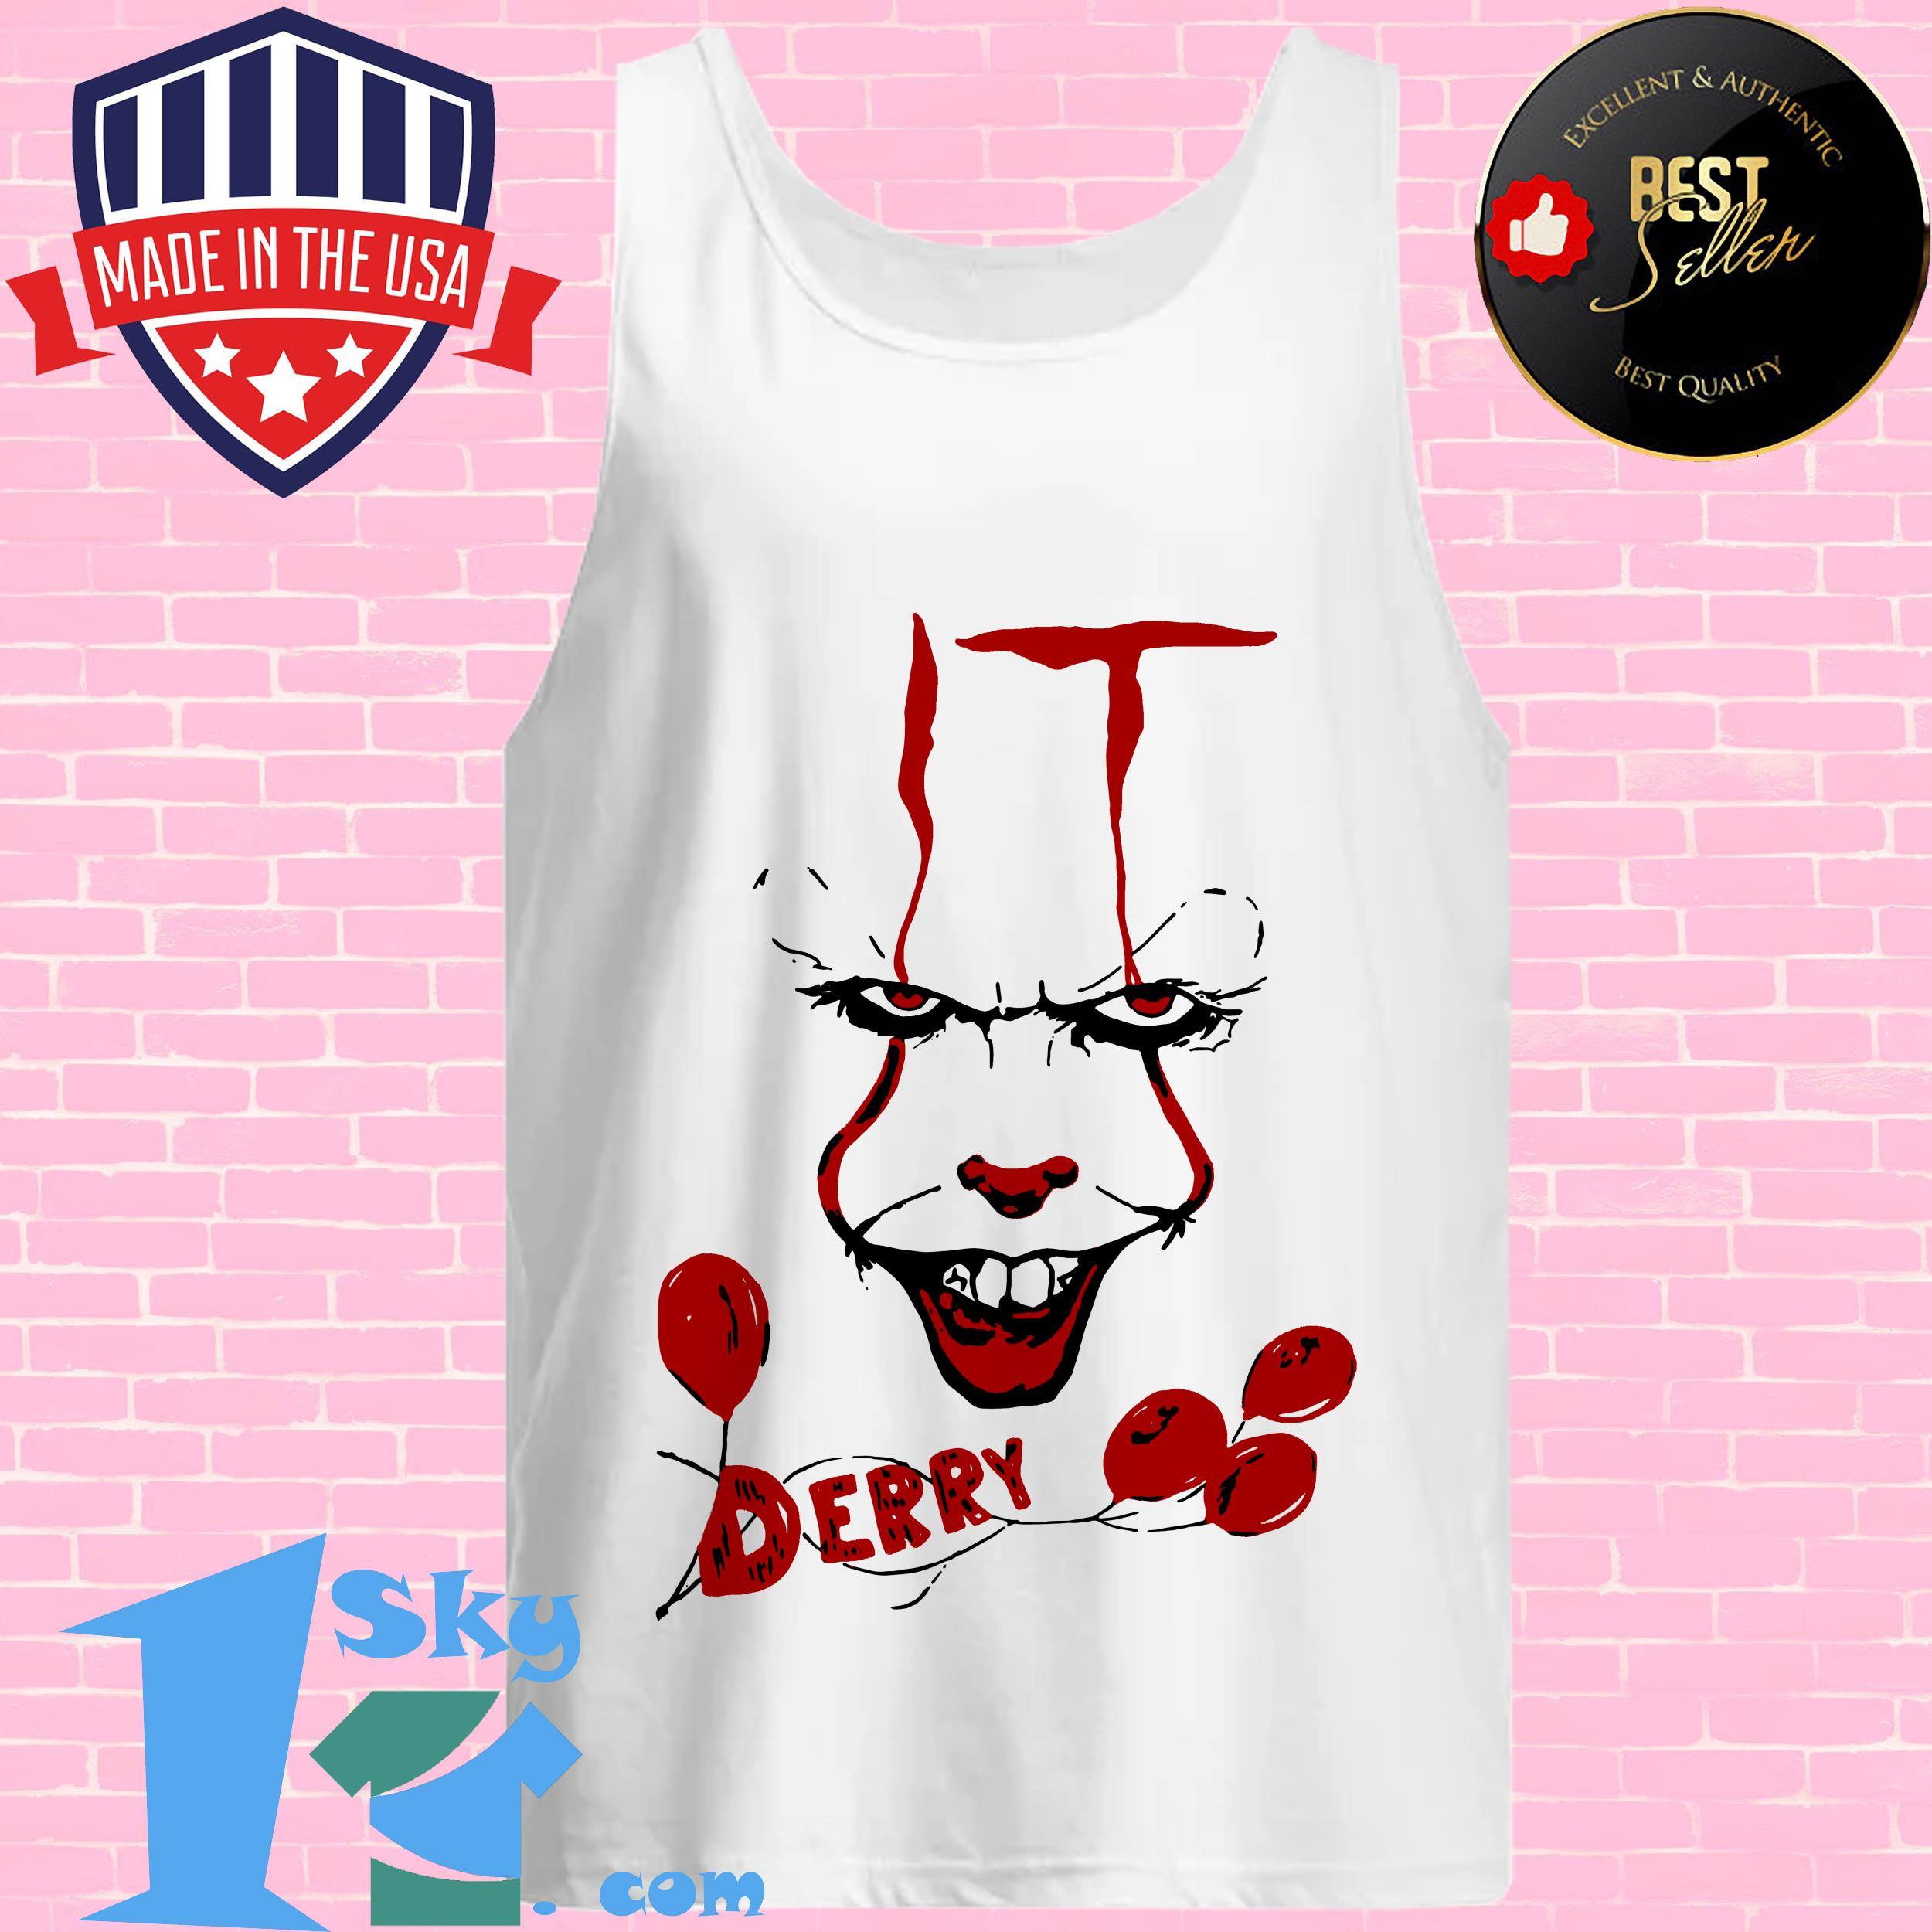 it pennywise killer clown chud stephen king derry maine tank top - IT Pennywise Killer Clown Chud Stephen King Derry Maine shirt